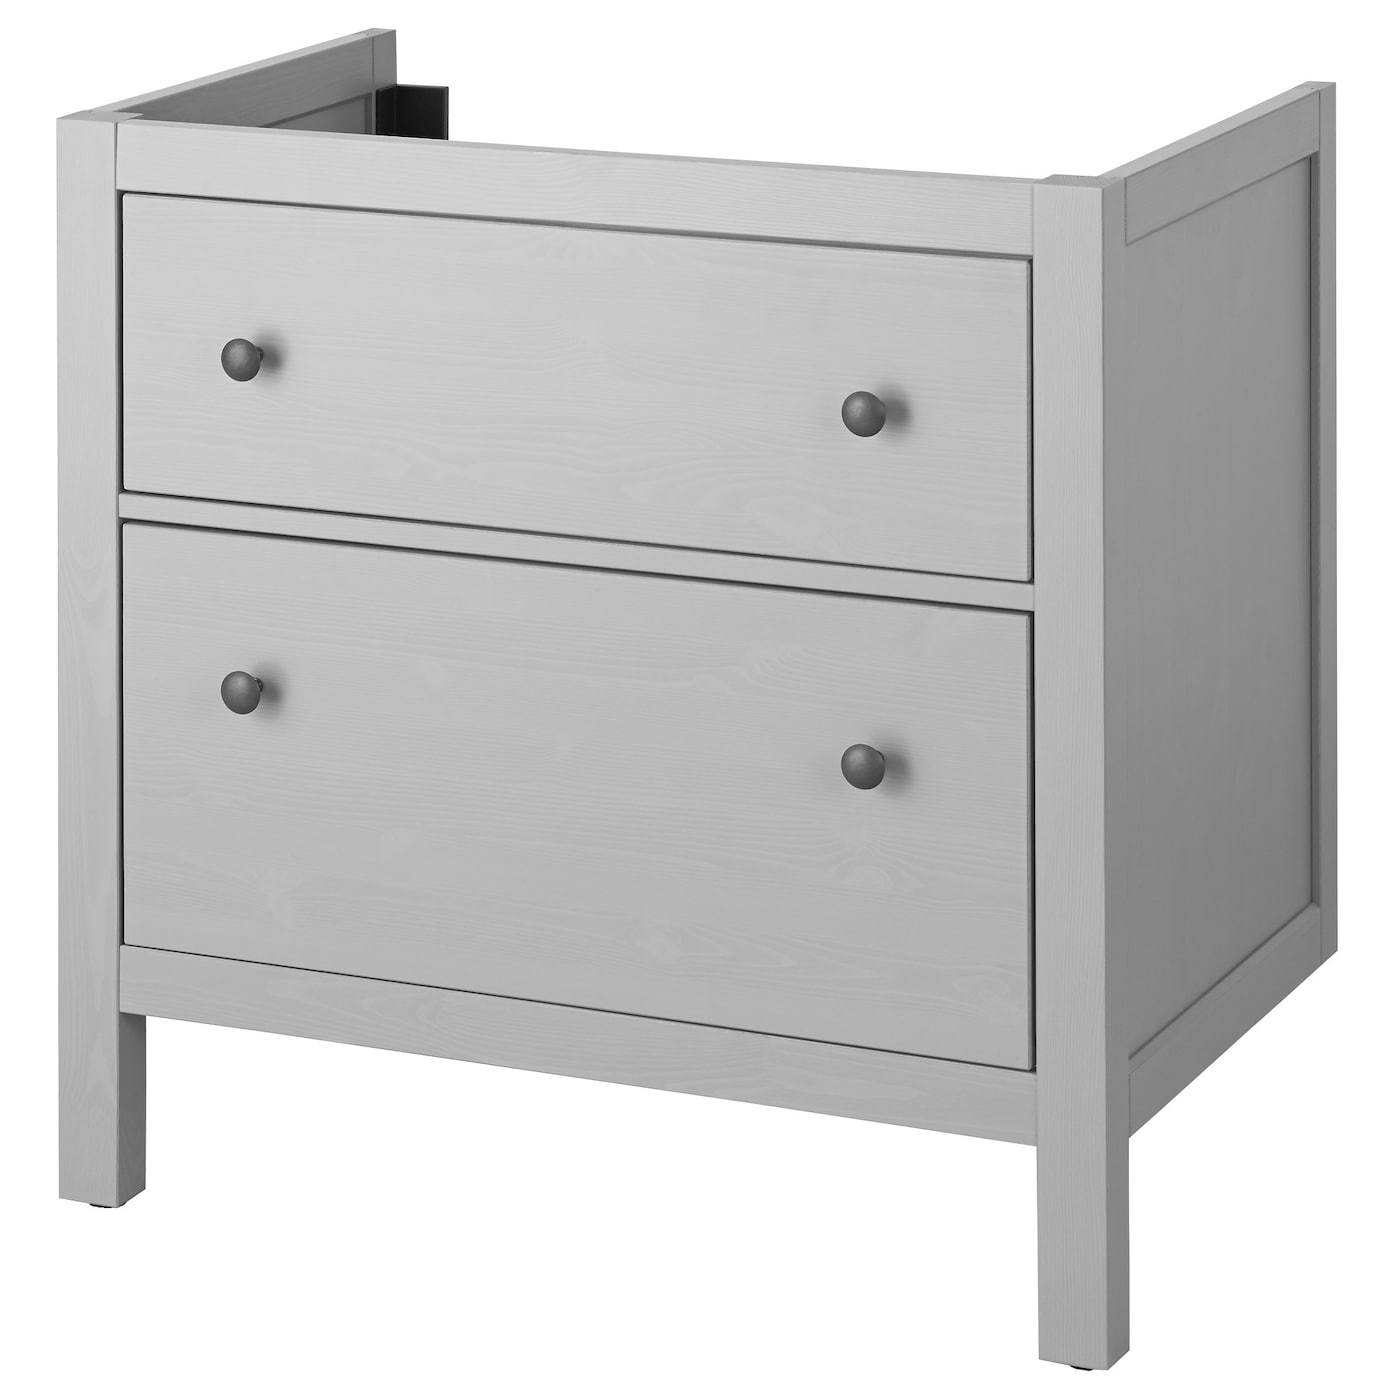 Sink Cabinet With 2 Drawers Hemnes Gray